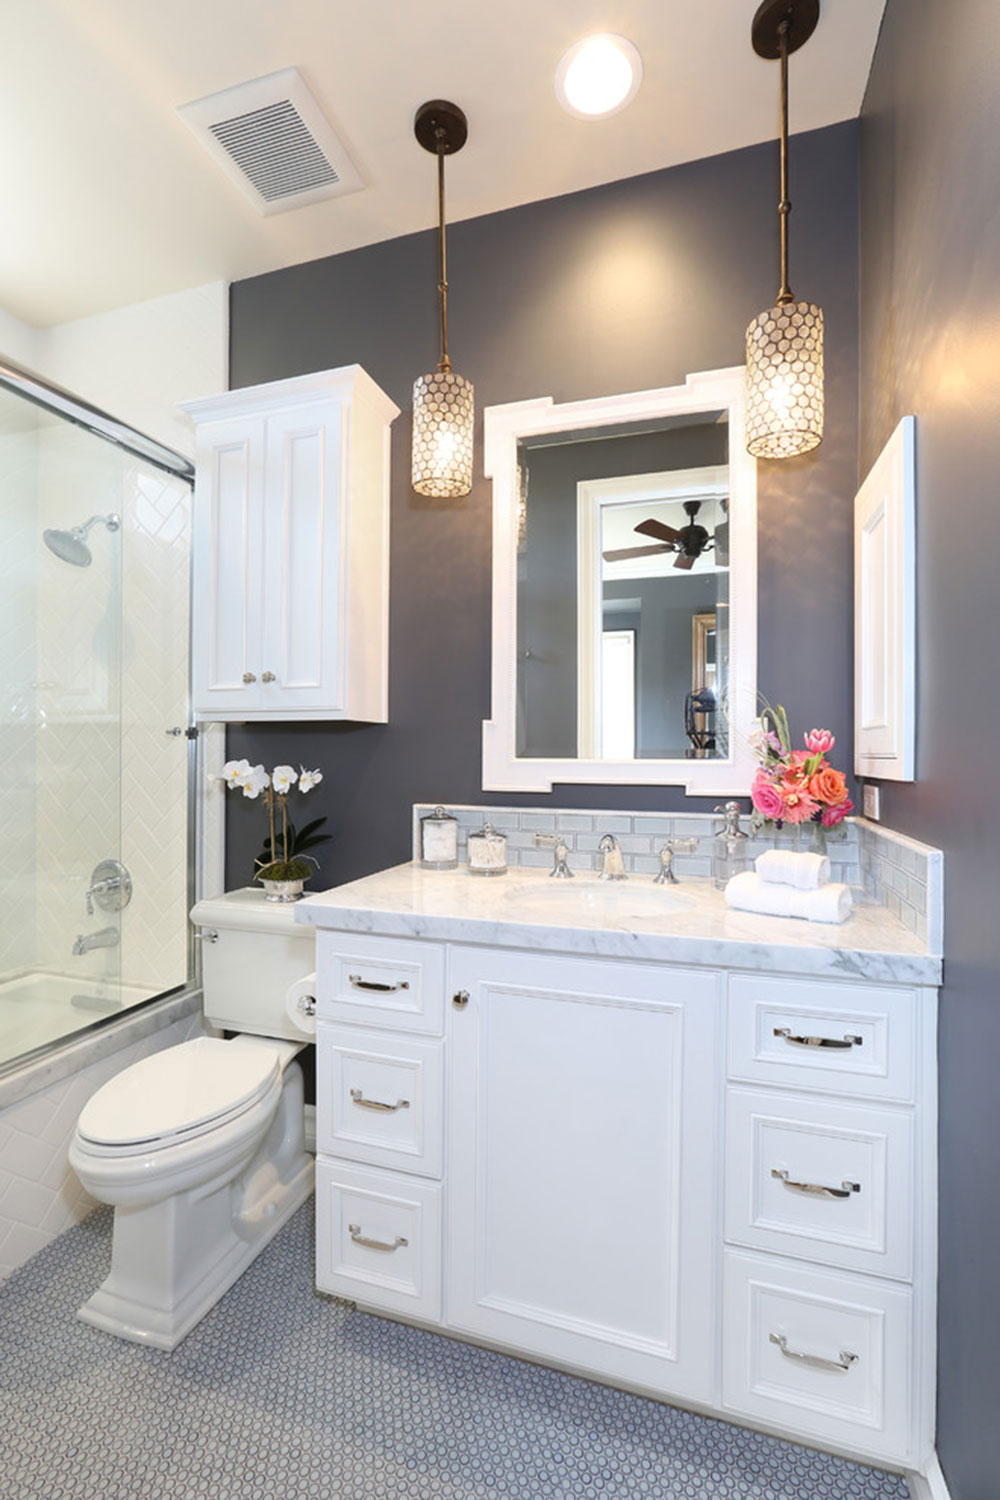 How To Make A Small Bathroom Look Bigger Tips And Ideas - How to remodel a bathroom for small bathroom ideas